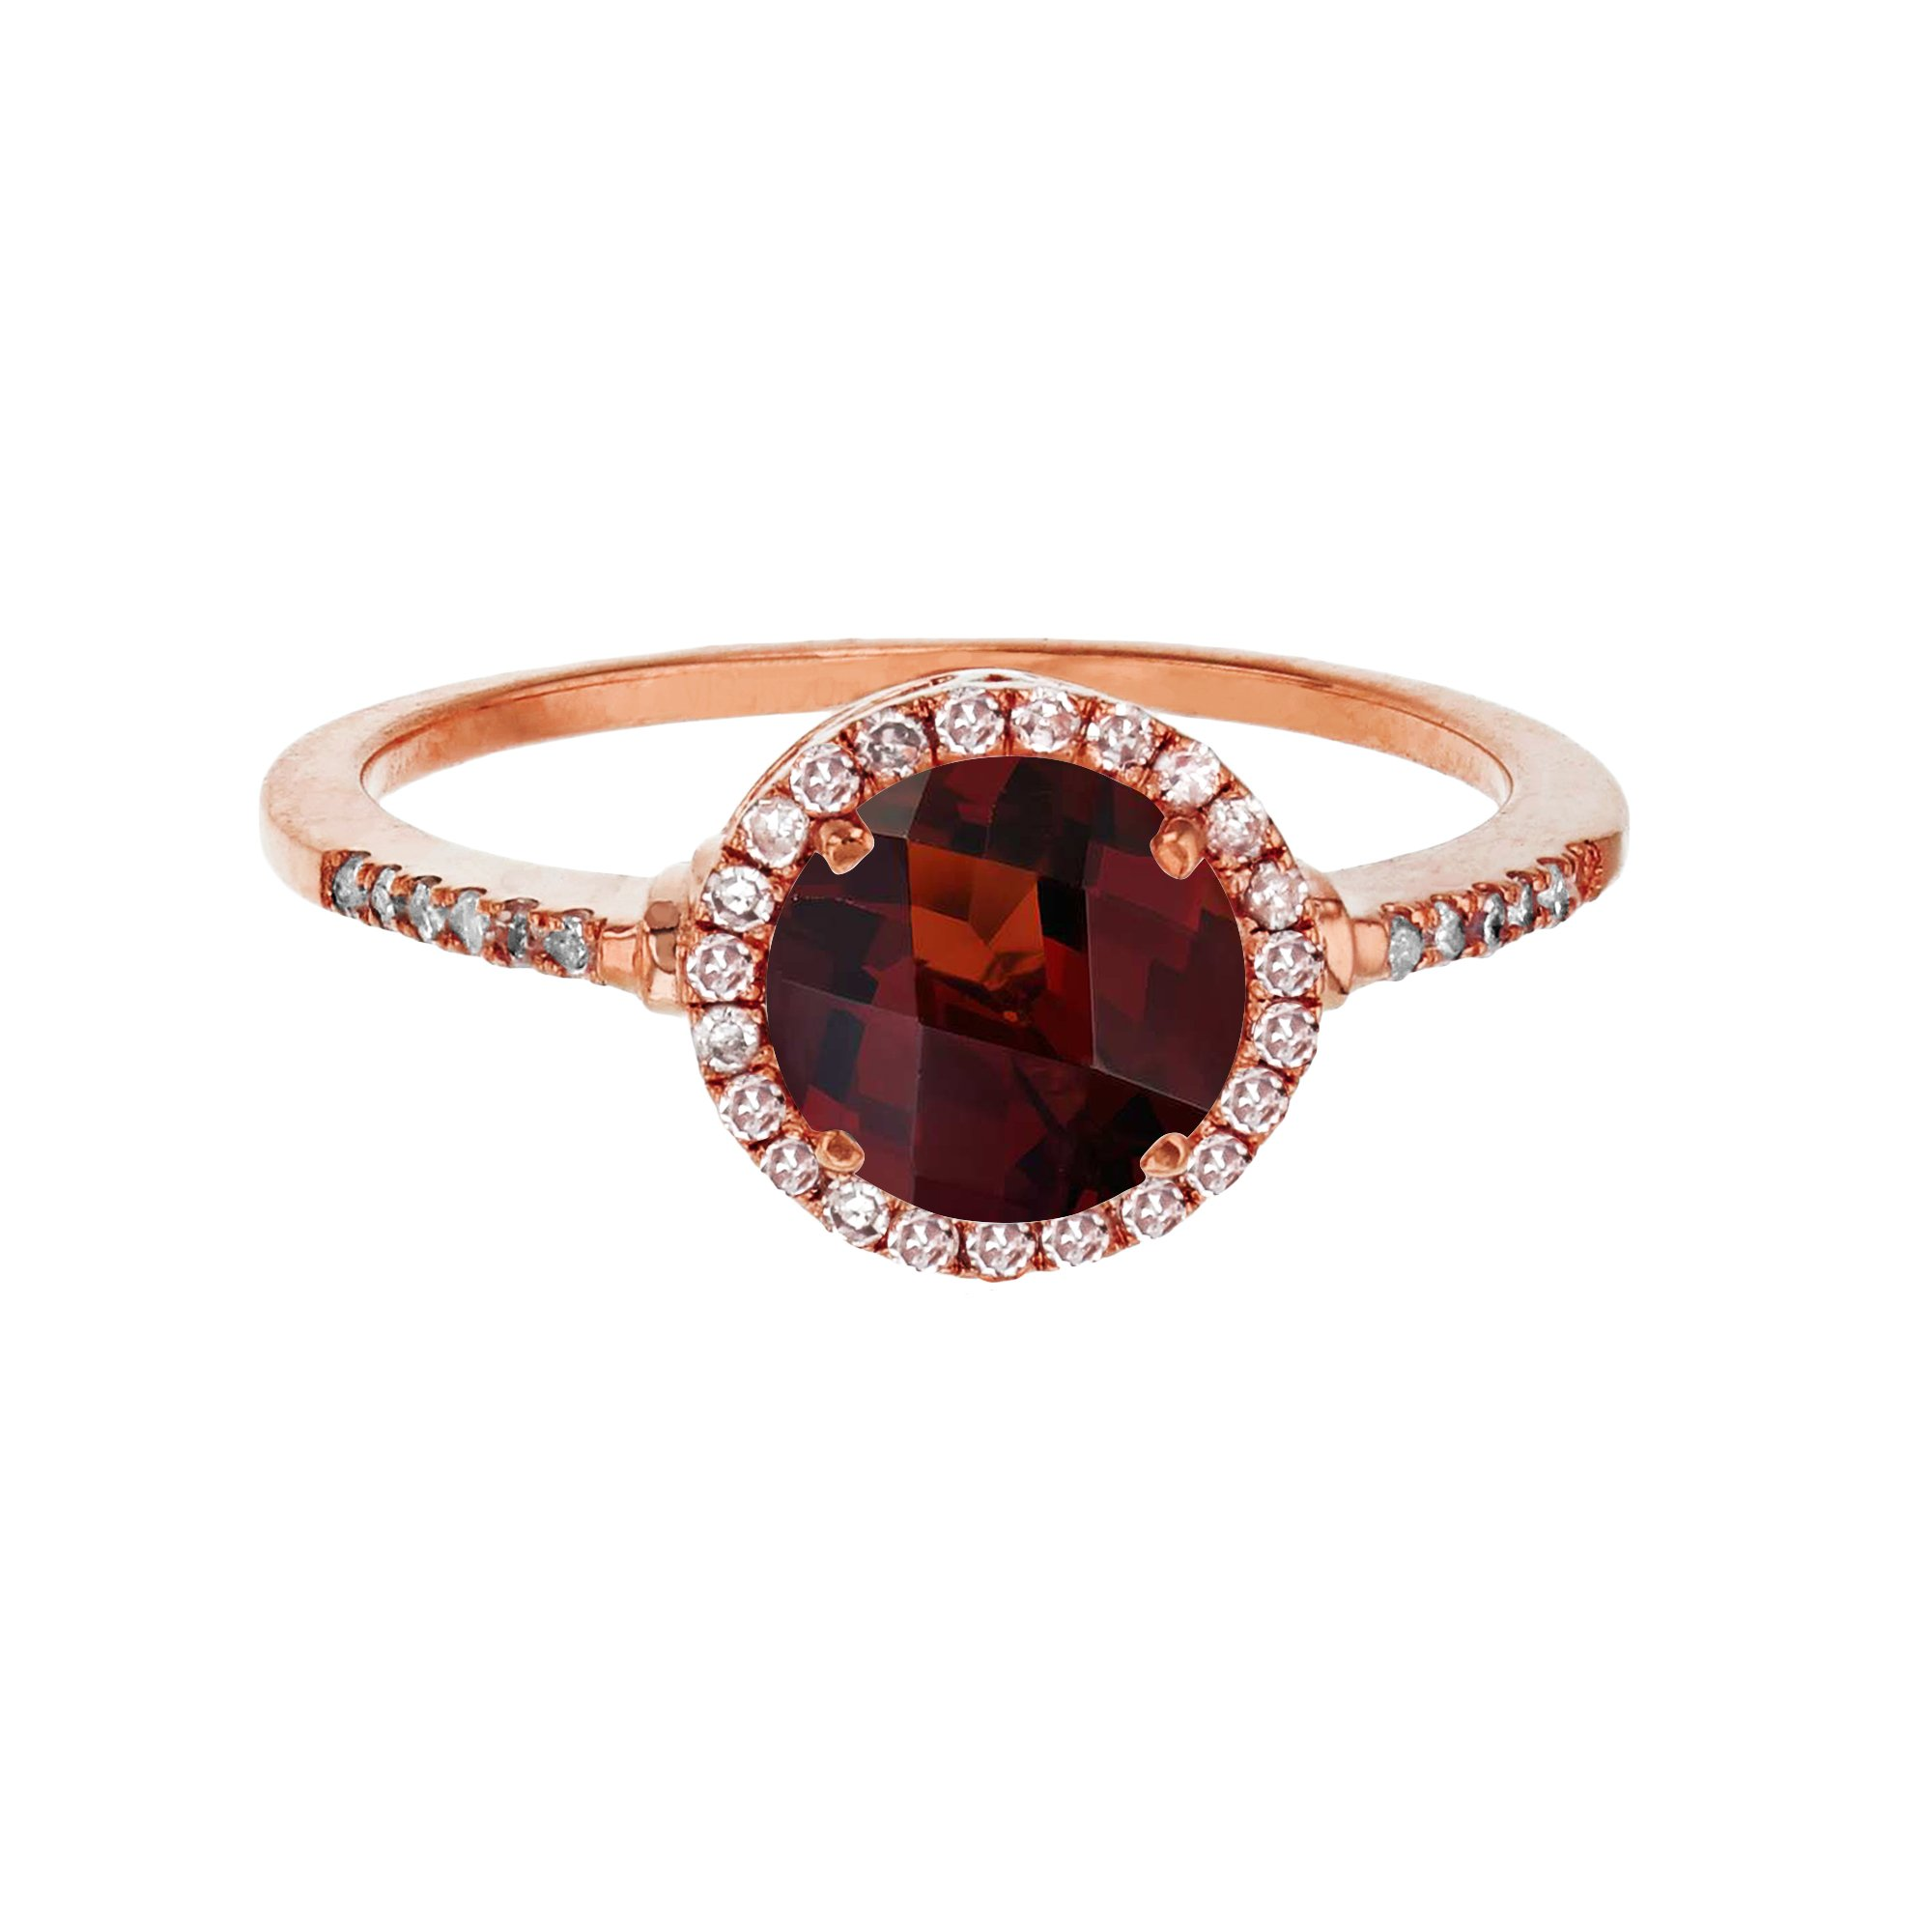 14K Rose Gold 7mm Round Garnet & 0.18 CTTW Diamond Halo Ring by Decadence